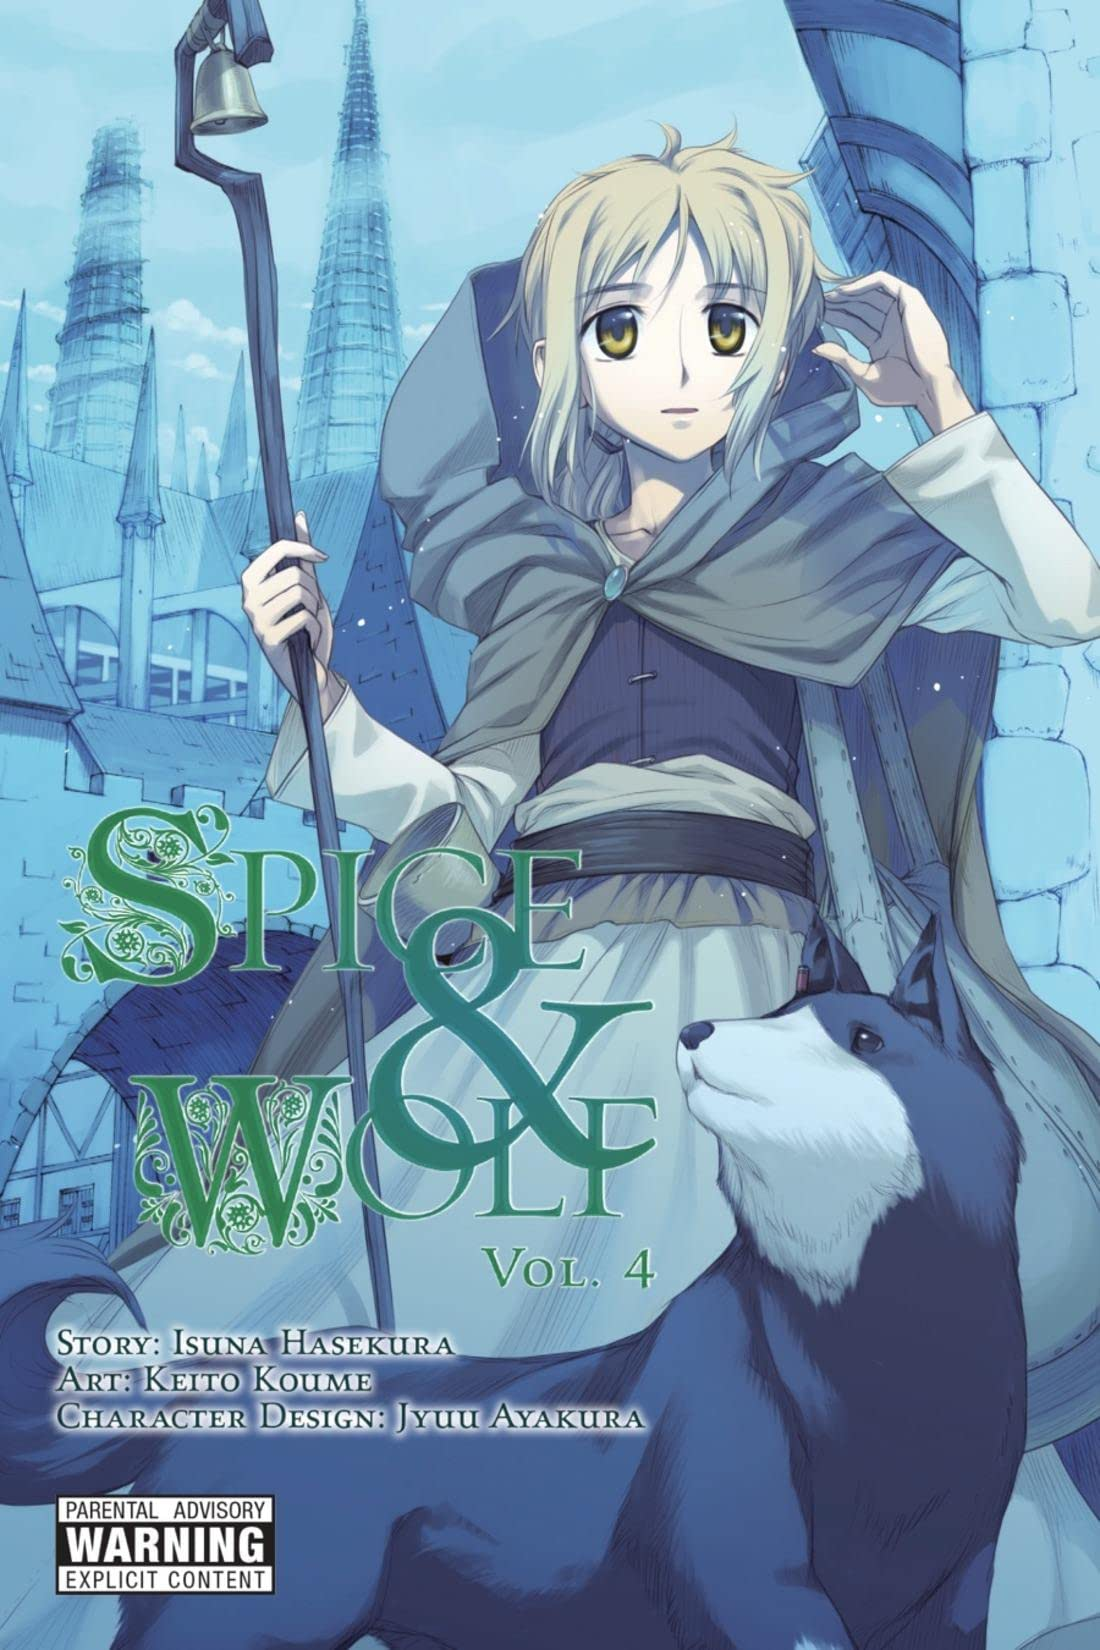 Spice and Wolf Vol. 4